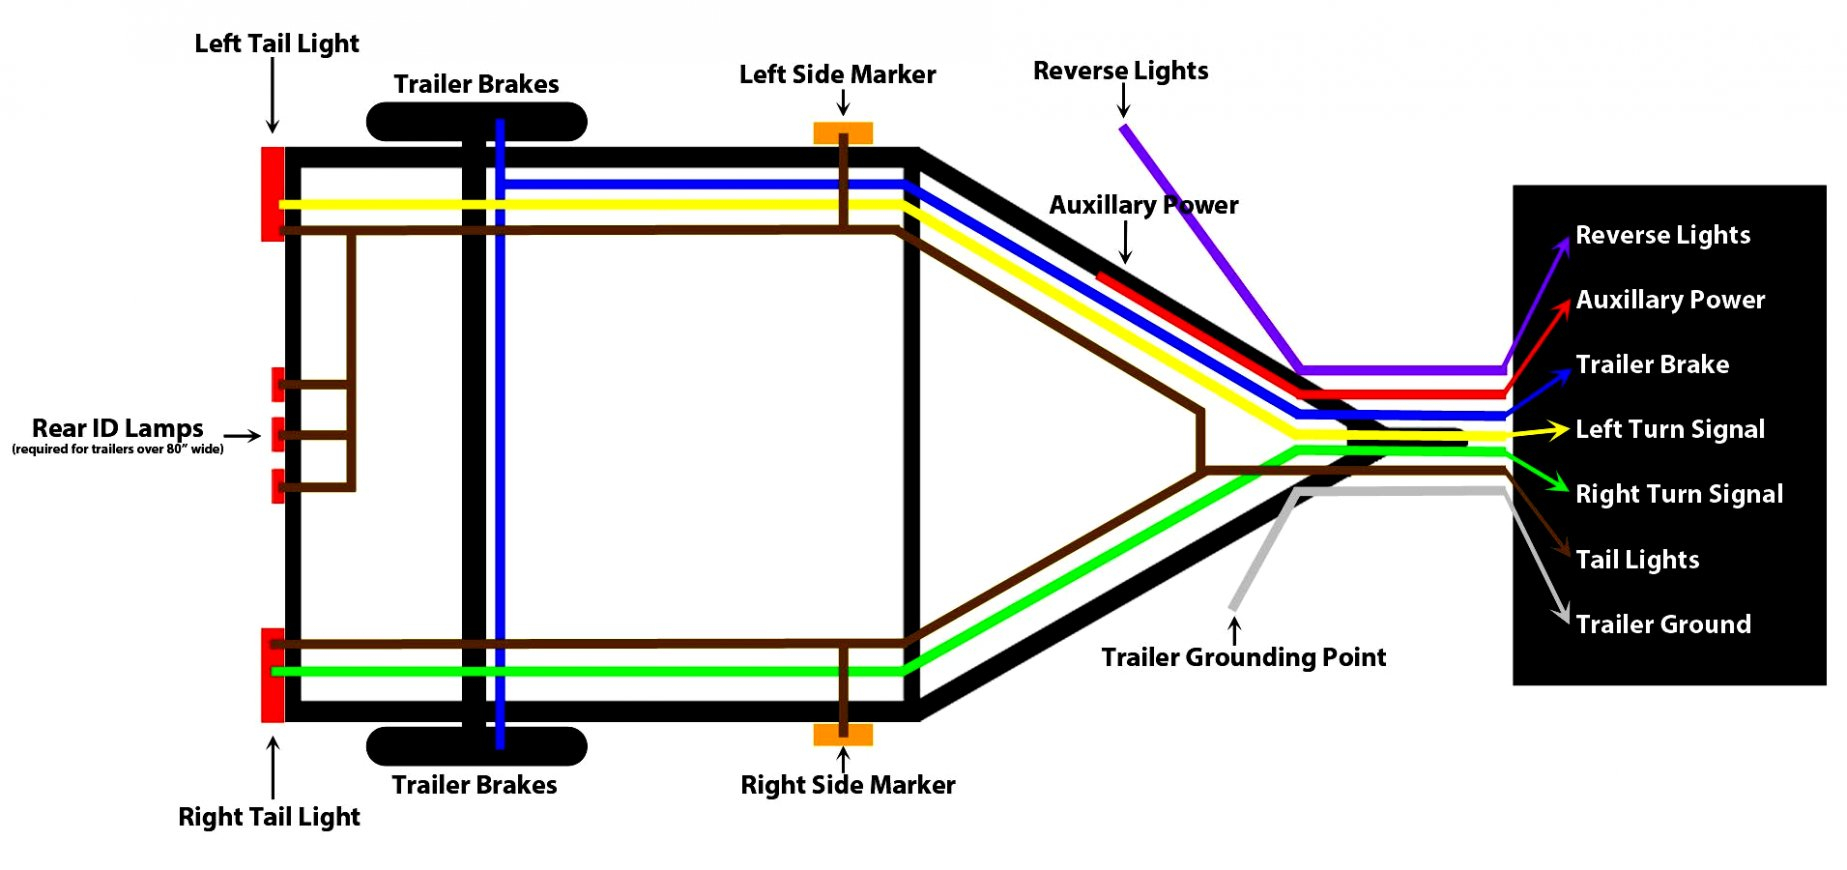 Boat Trailer Harness | Wiring Diagram - Wiring Diagram For Boat Trailer Lights